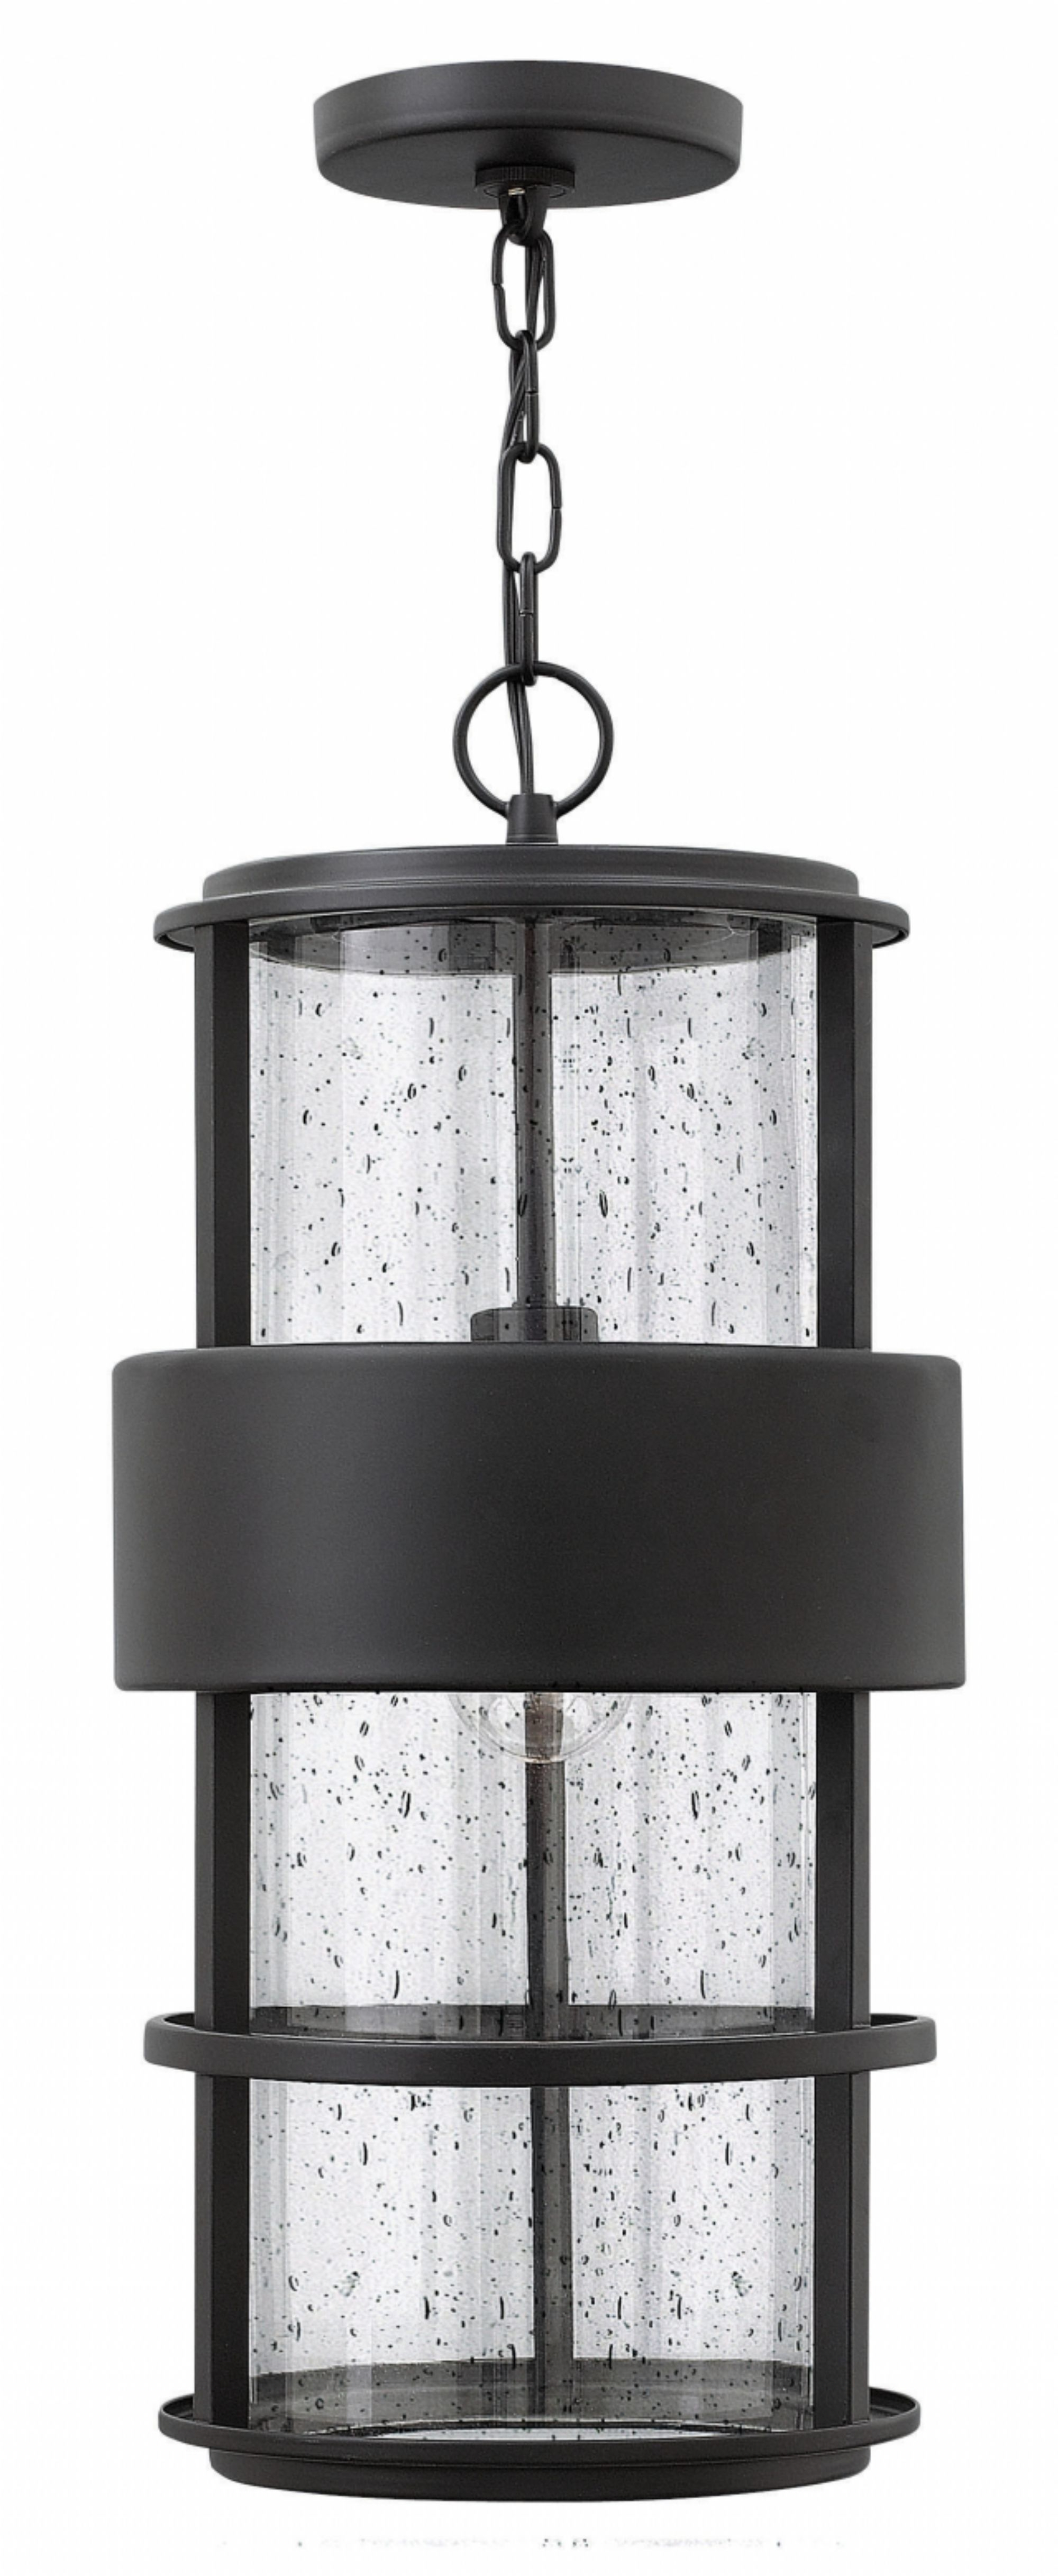 Satin Black Saturn > Exterior Ceiling Mount Intended For Contemporary Hanging Porch Hinkley Lighting (View 6 of 15)